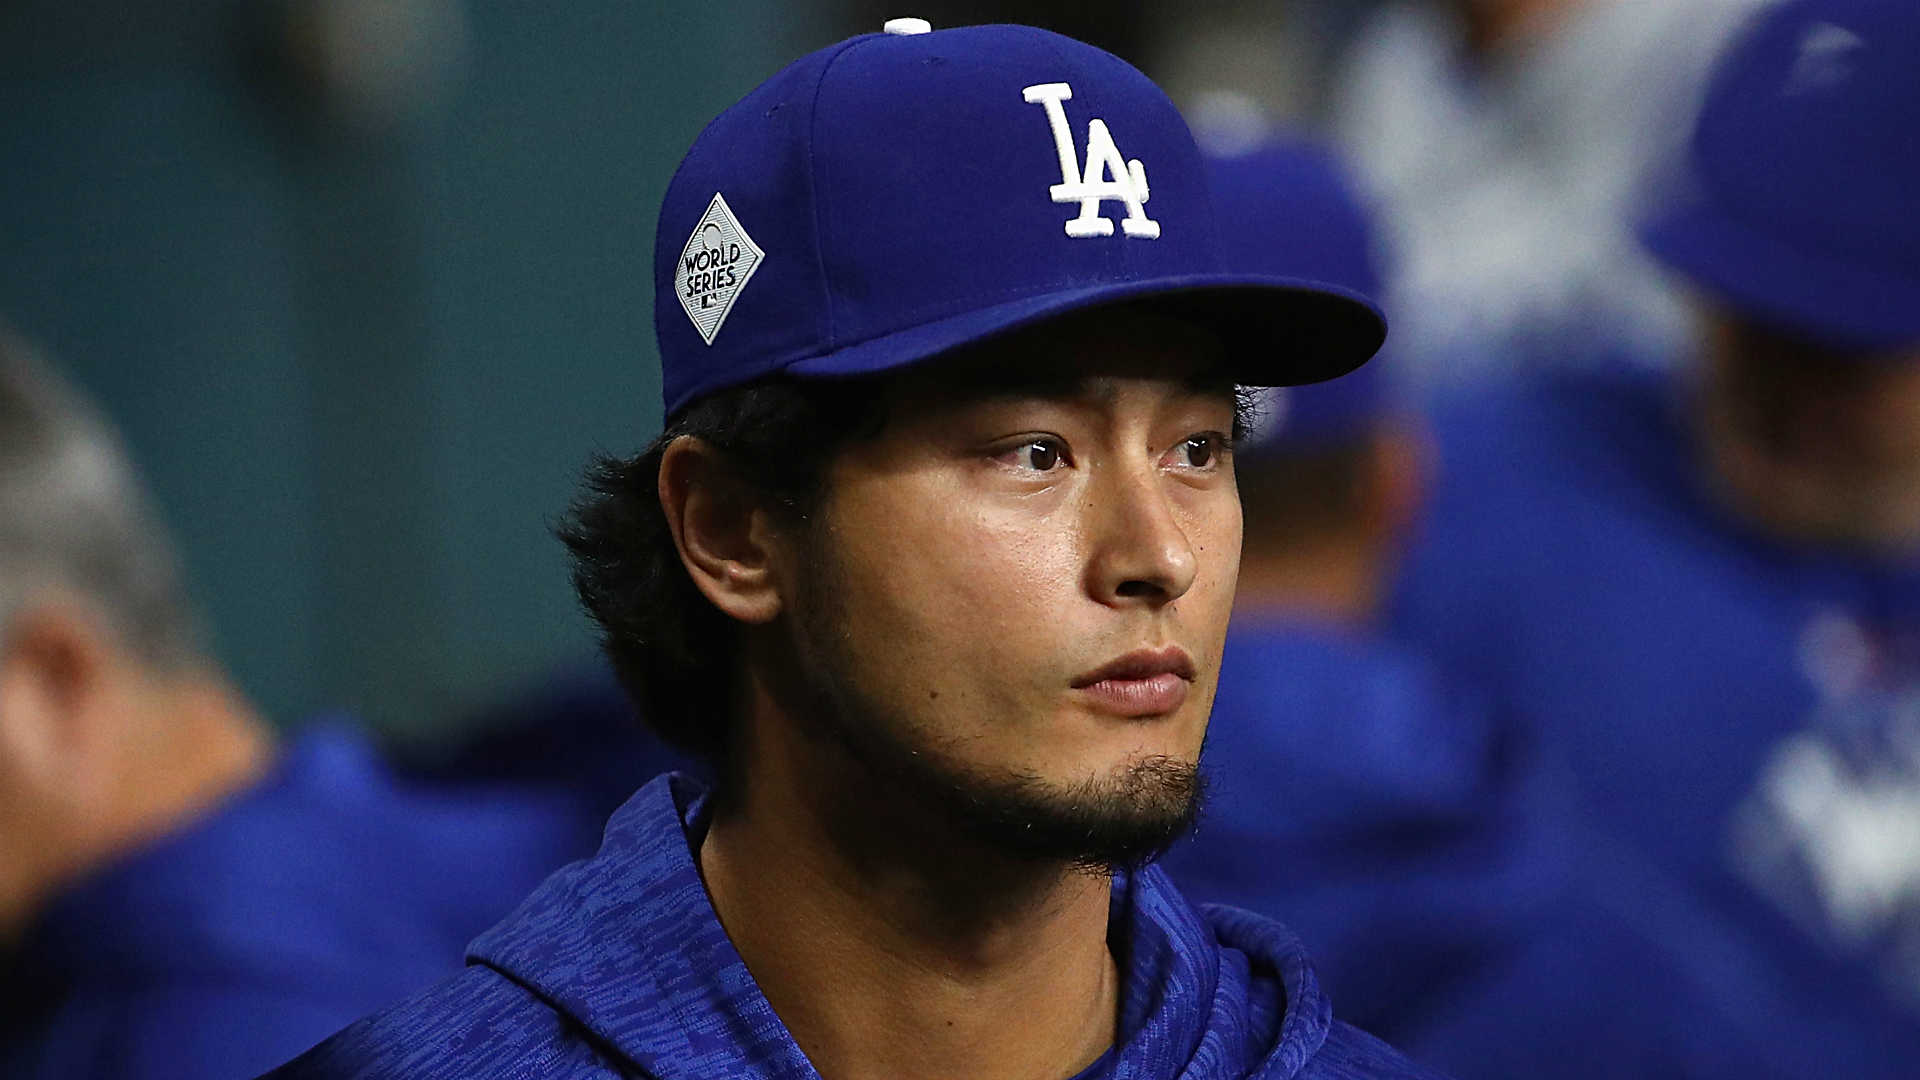 Pitcher Yu Darvish, Cubs agree to $126M, 6-year deal